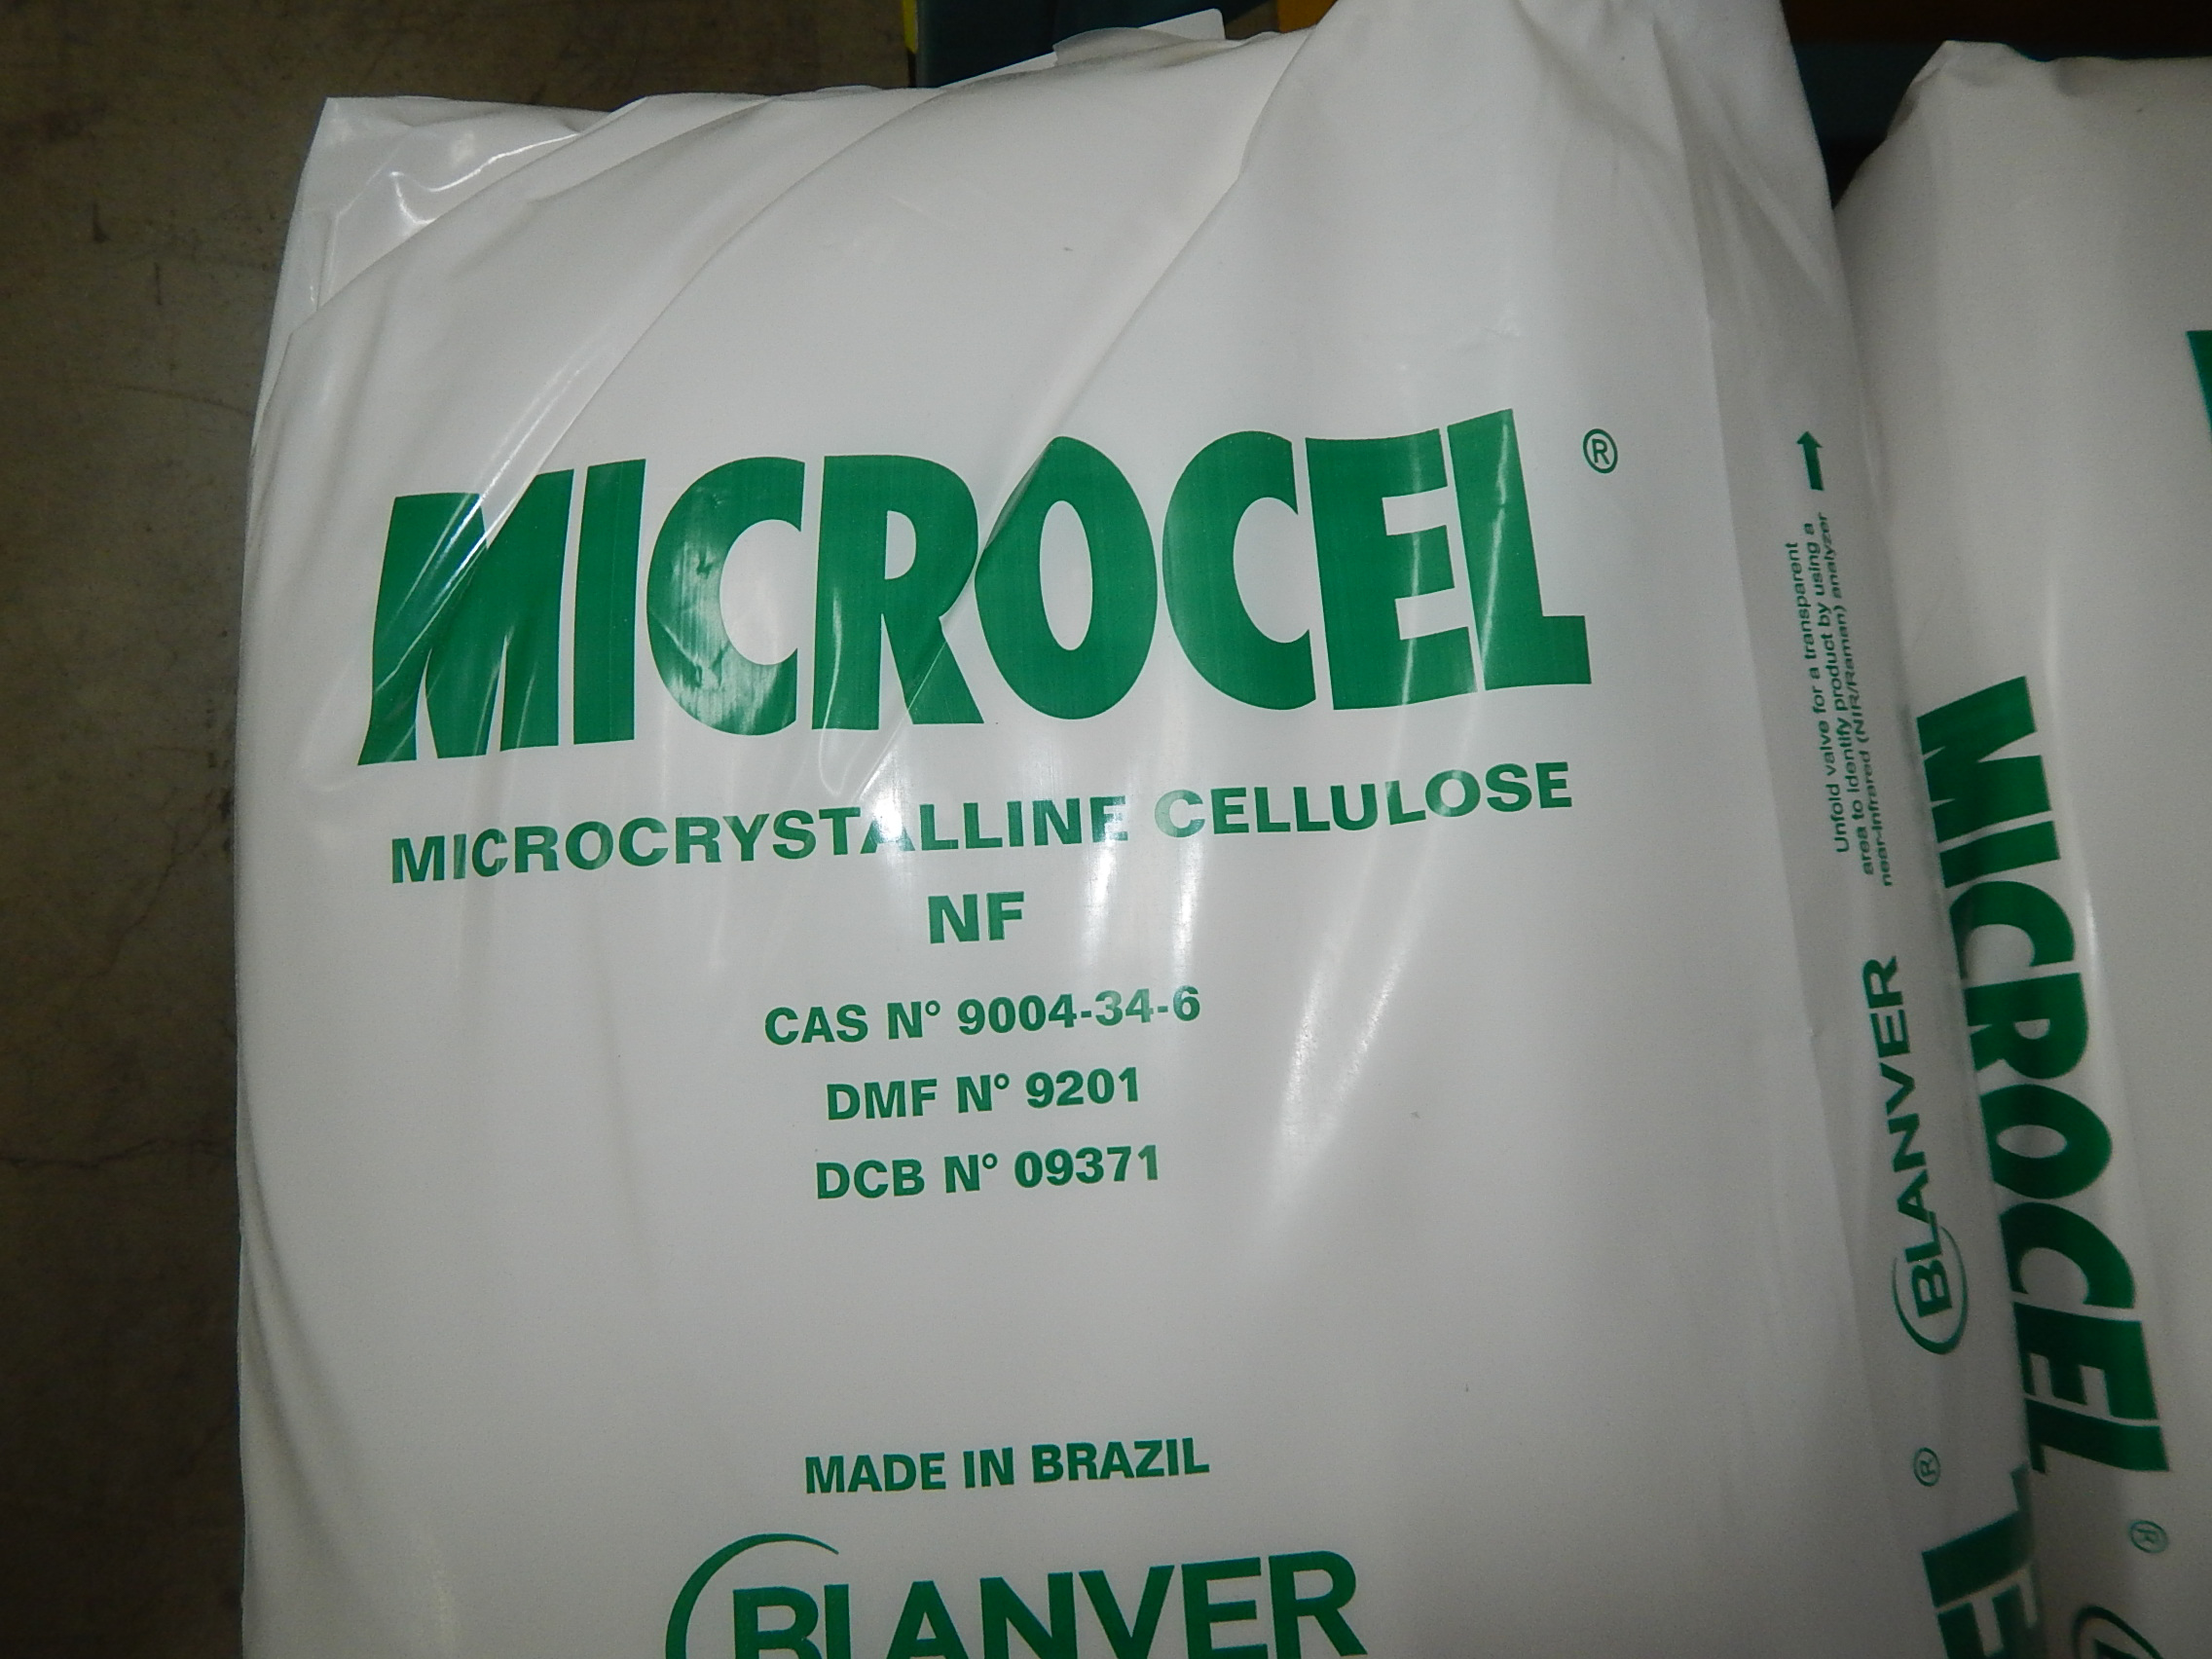 Lot 12 - LOT/ SKID WITH CONTENTS CONSISTING OF 33LBS BAGS OF MICROCEL MICROCRYSTALLINE CELLULOSE